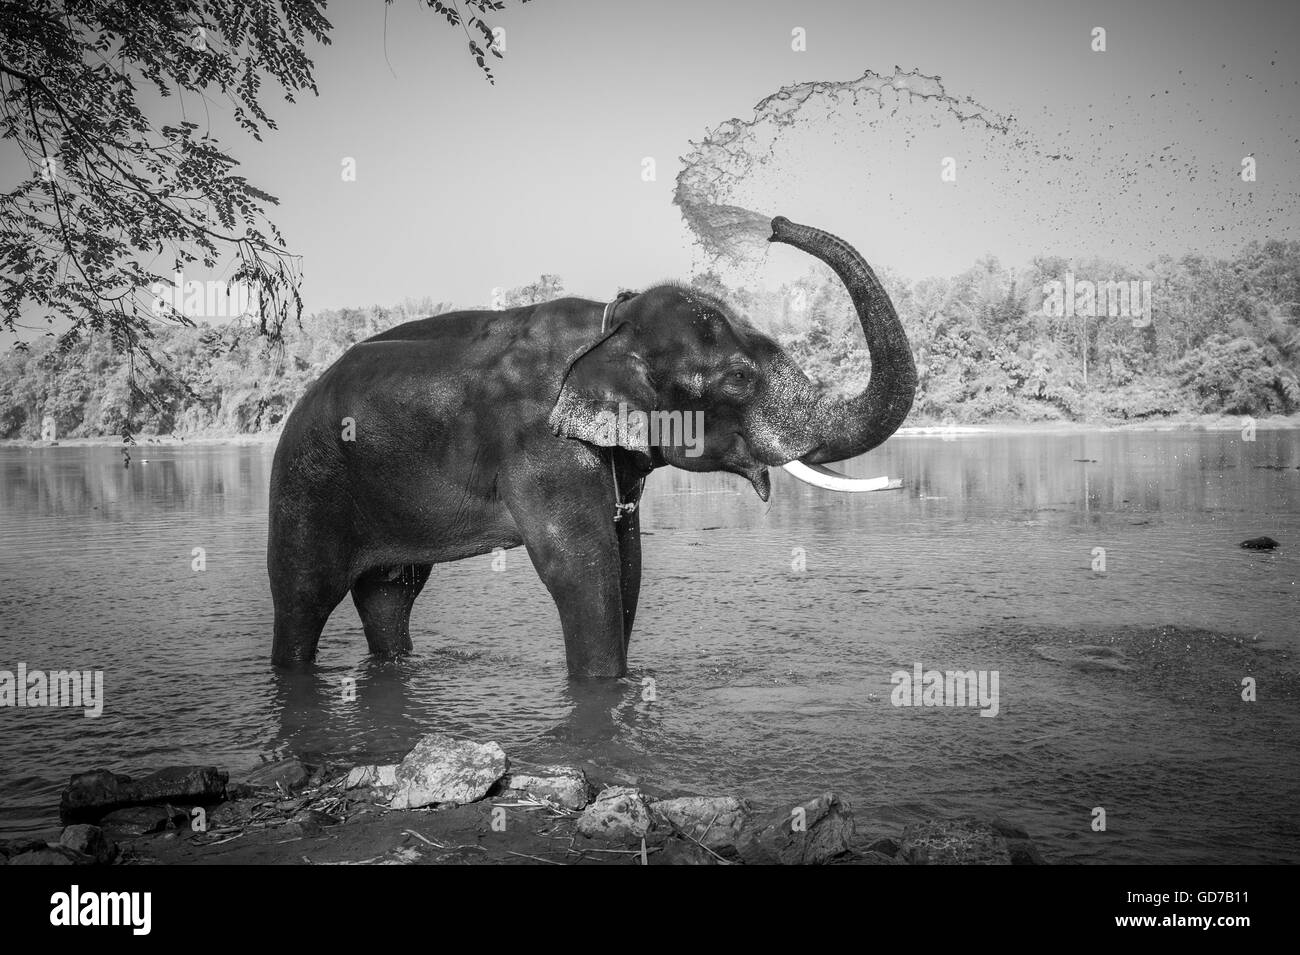 Black and white image of elephant bathing, Kerala, India - Stock Image